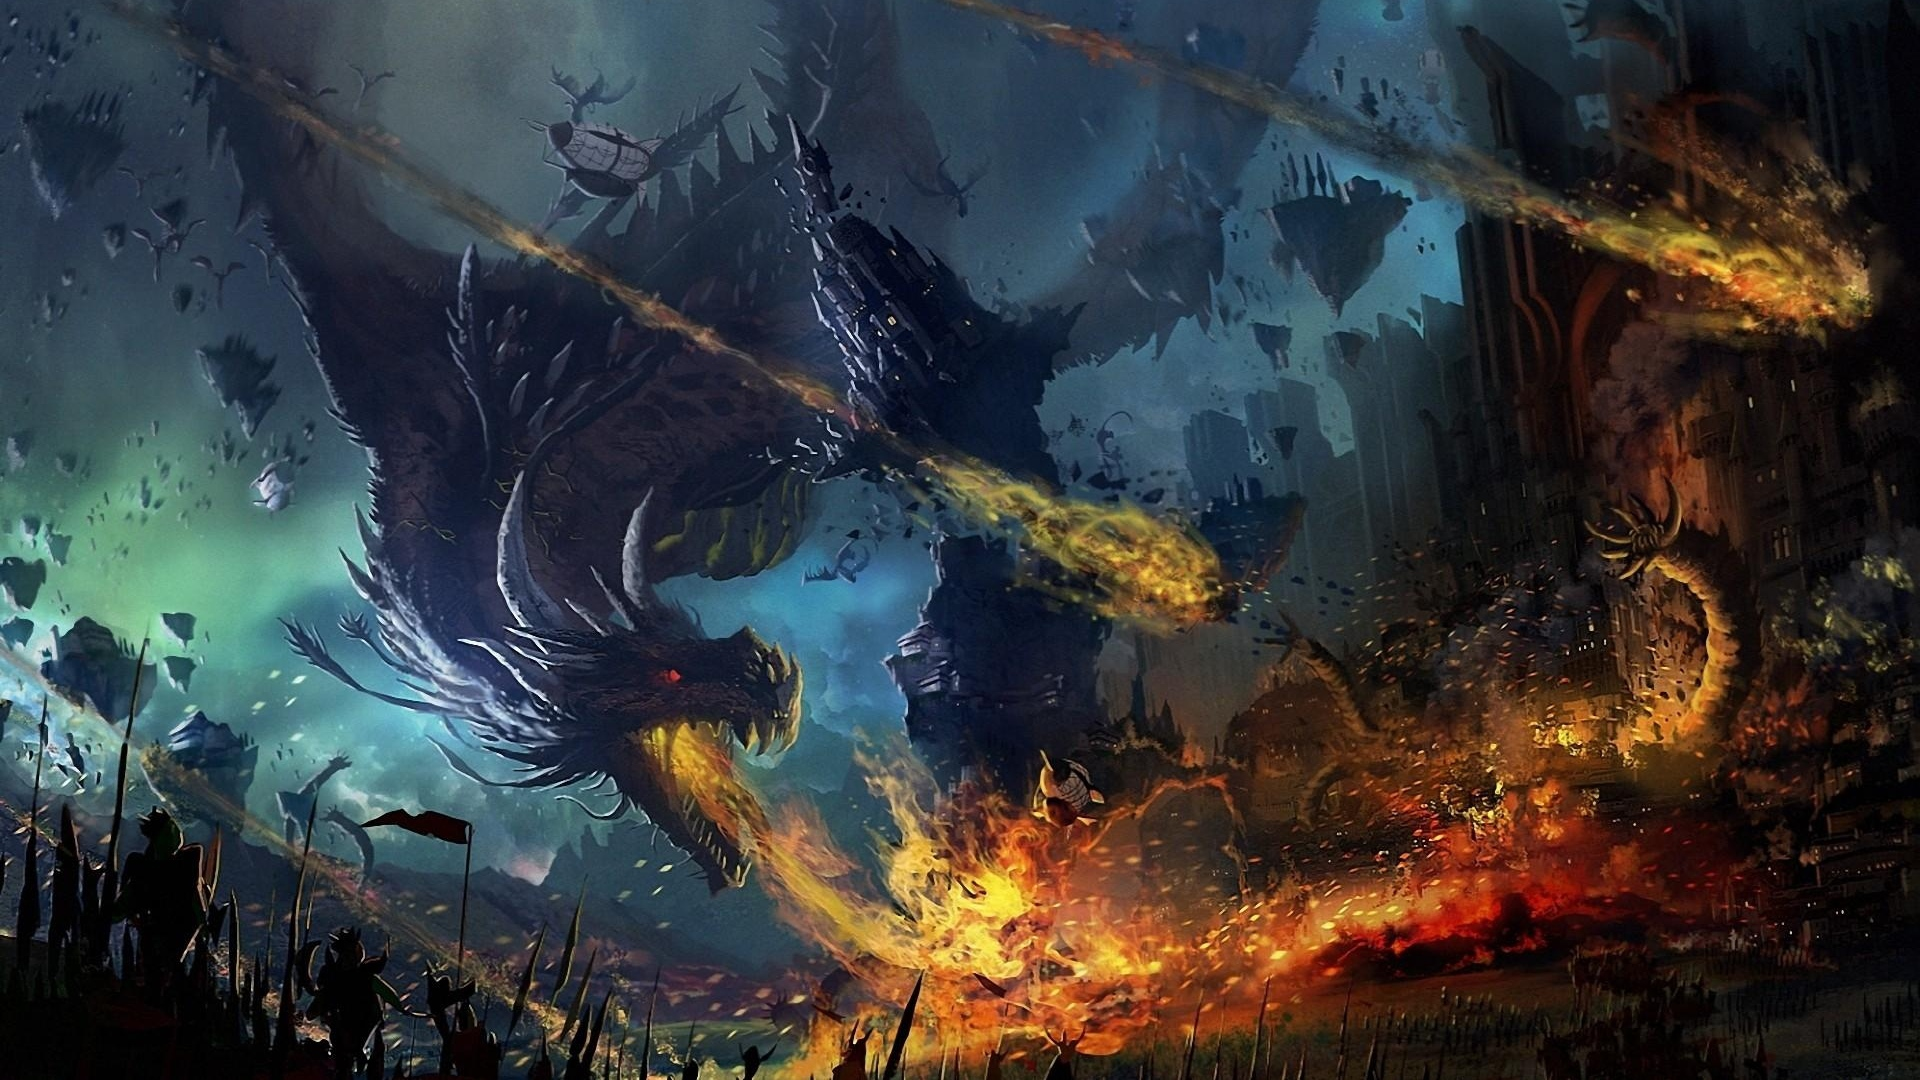 Image Result For Dragon Wallpaper Dragon Fall Fire Flame War Battle